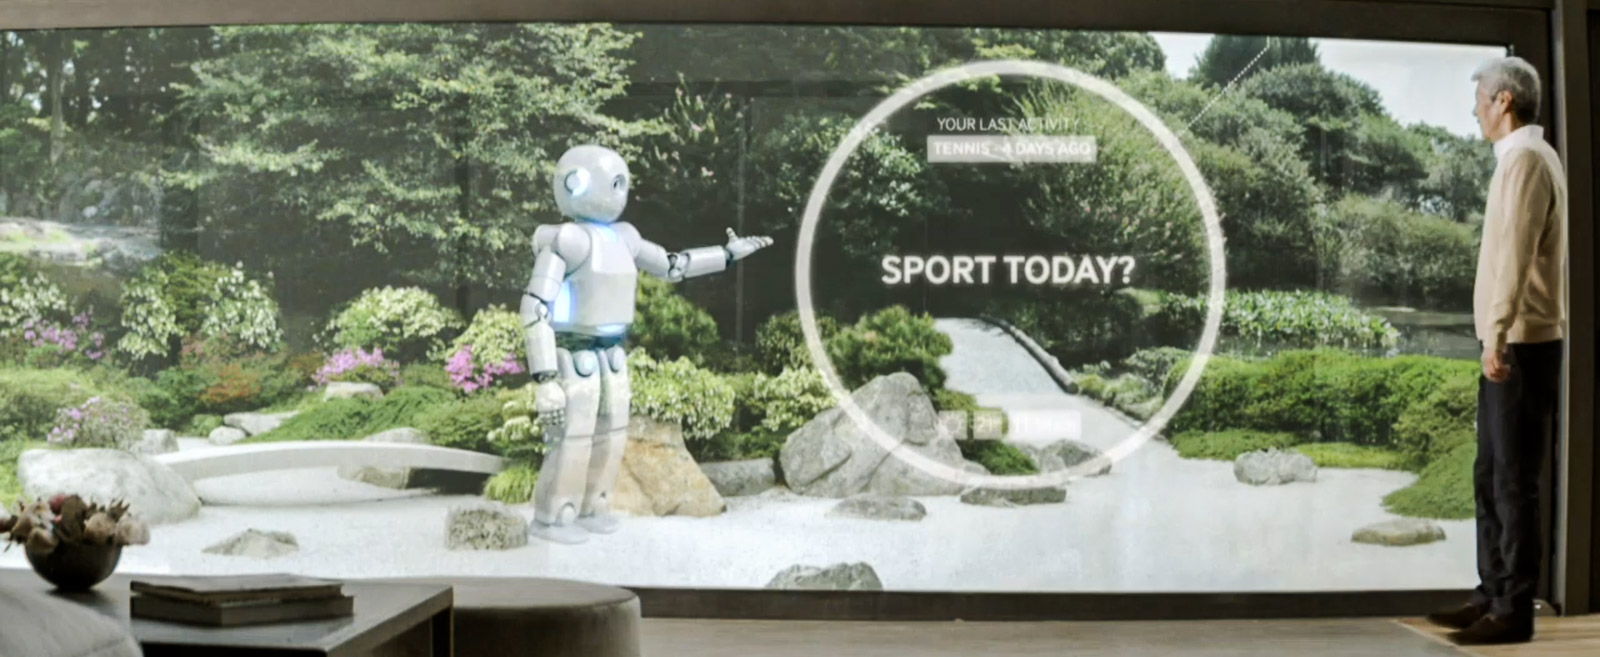 Samsung's ideal smart home, here embodied by a virtual robot image, will prompt people to exercise.